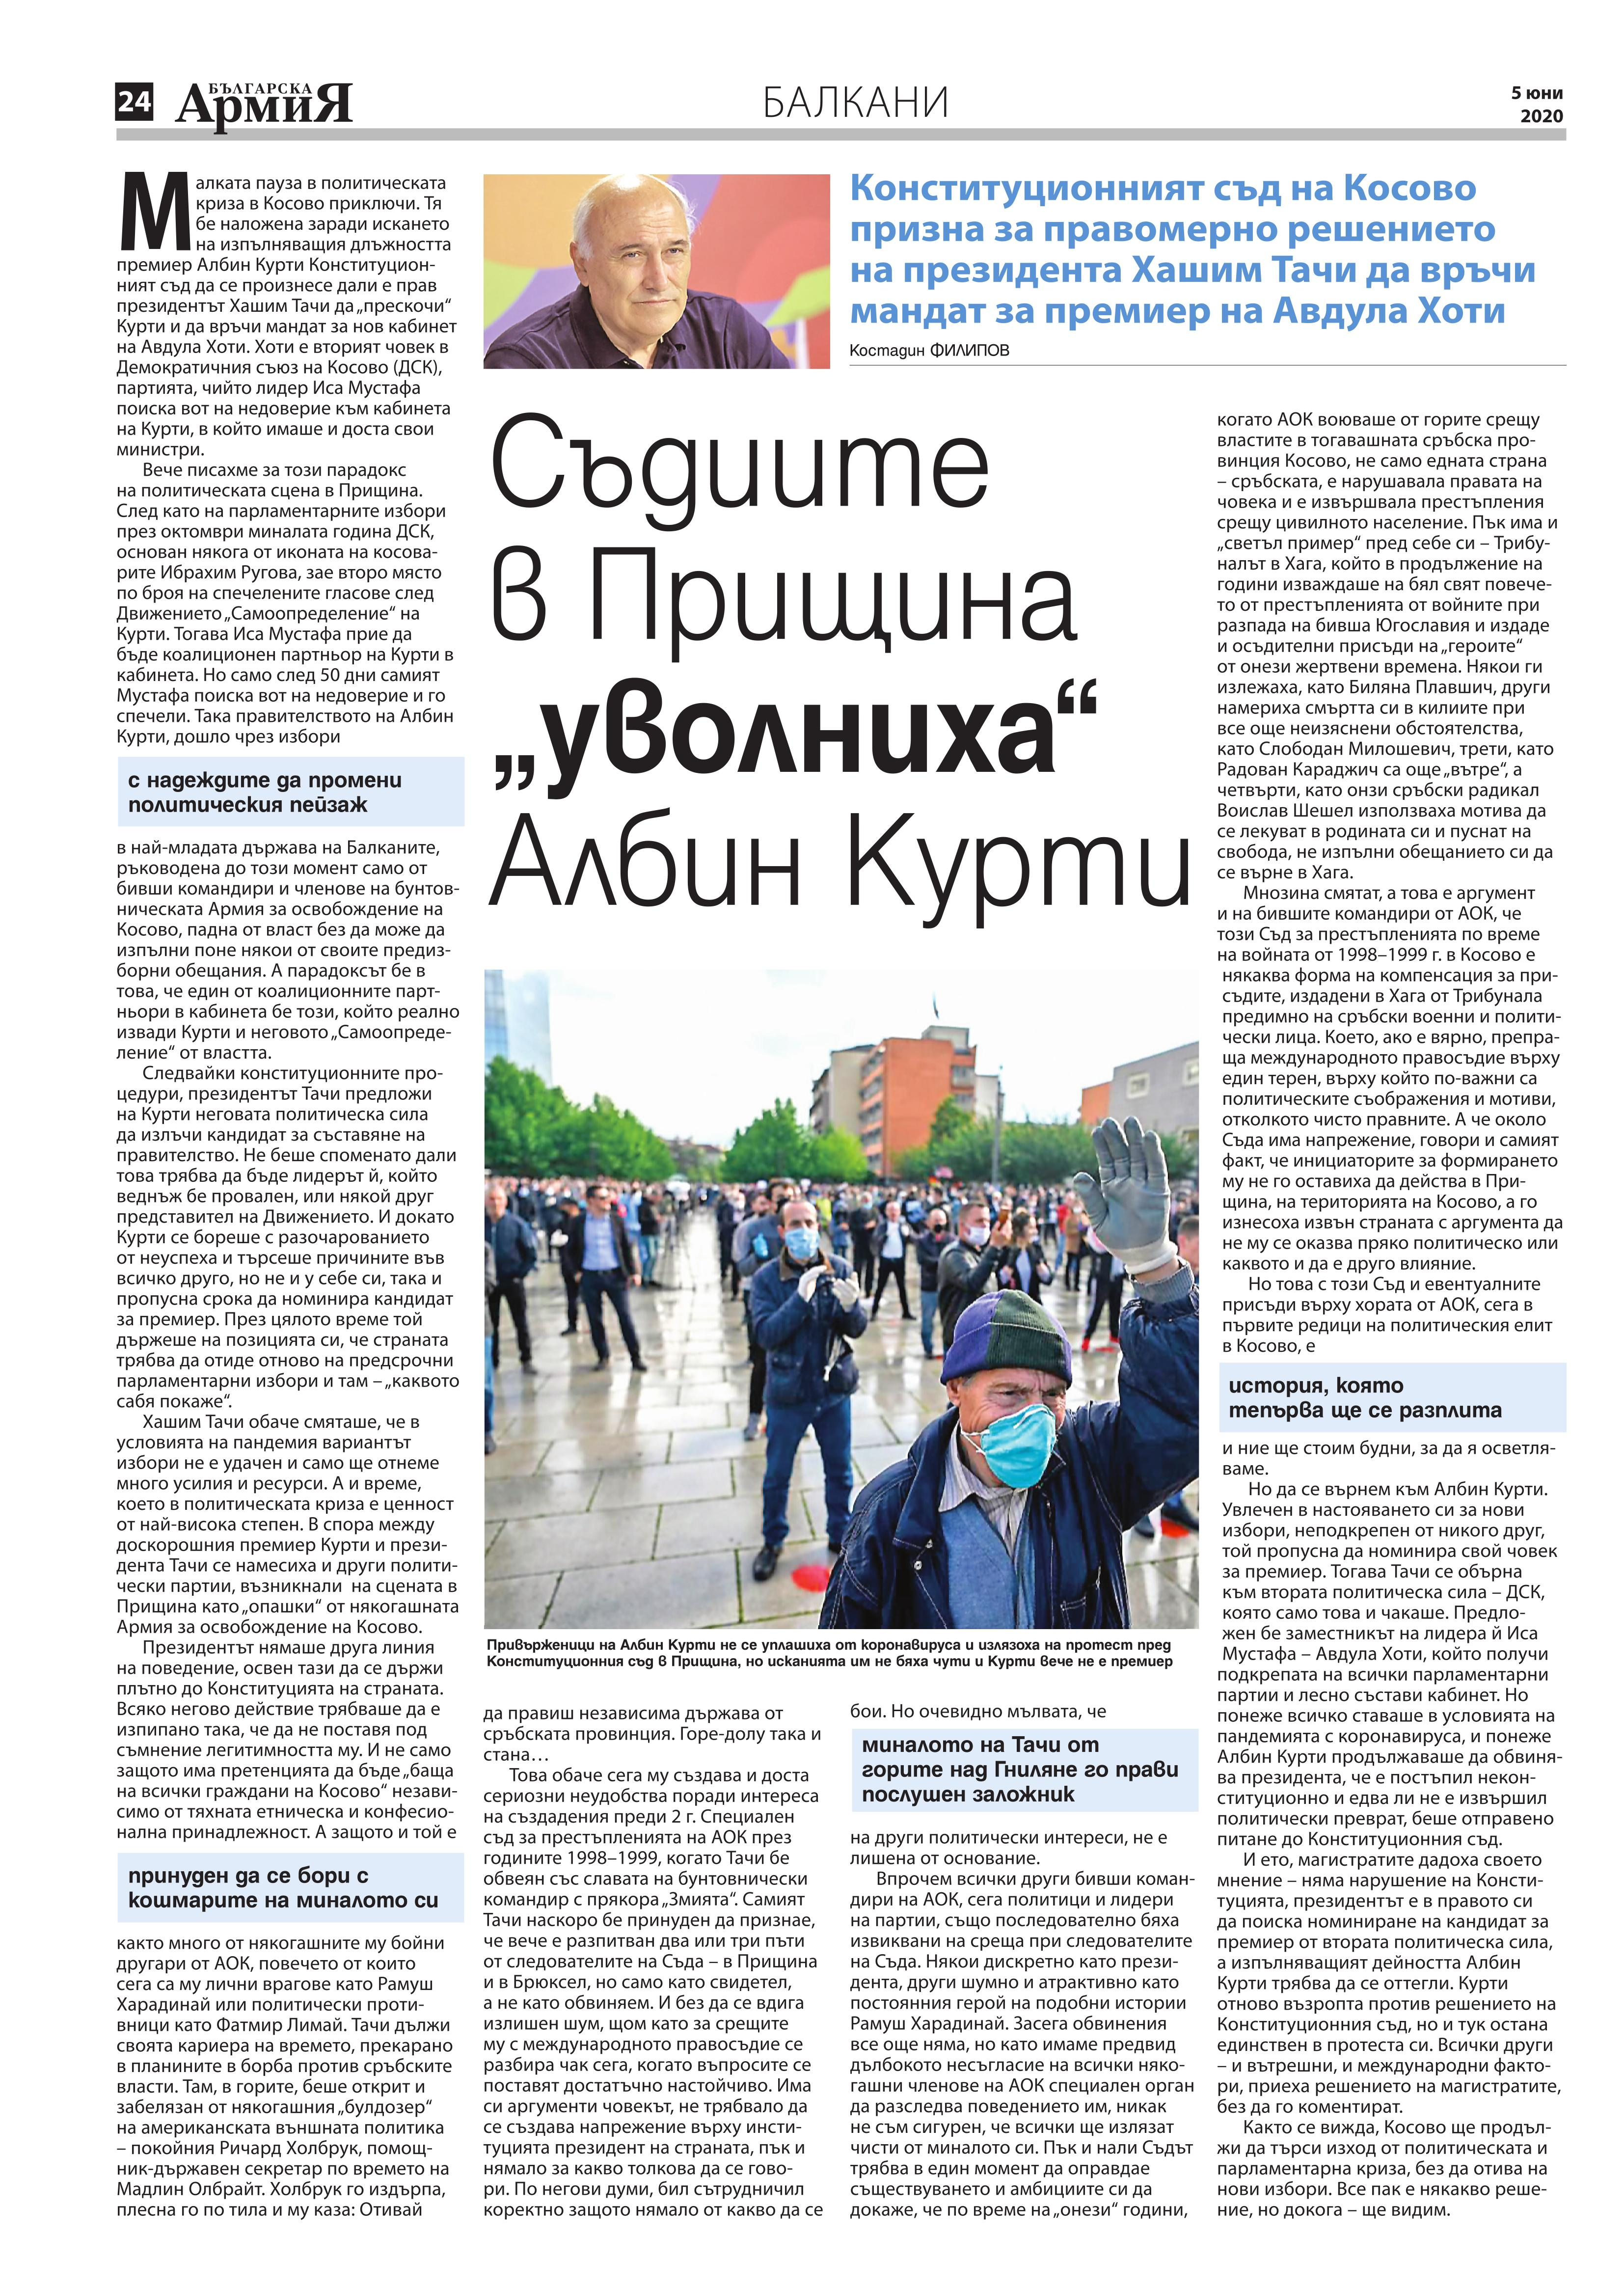 https://armymedia.bg/wp-content/uploads/2015/06/24.page1_-142.jpg